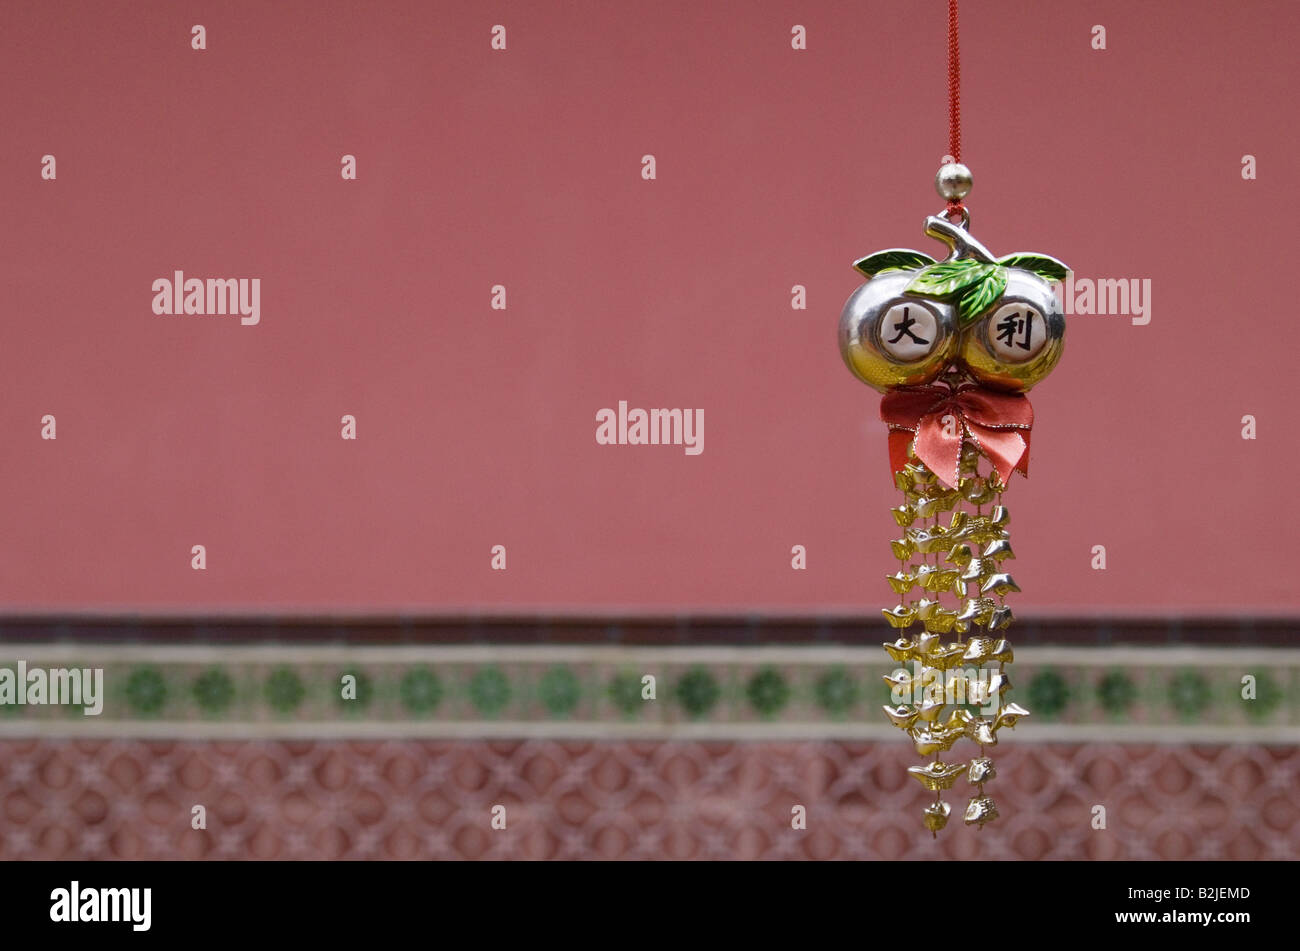 Ornate wind chime inside Thian Hock Keng Temple, the oldest Hokkien Chinese temple in Singapore - Stock Image